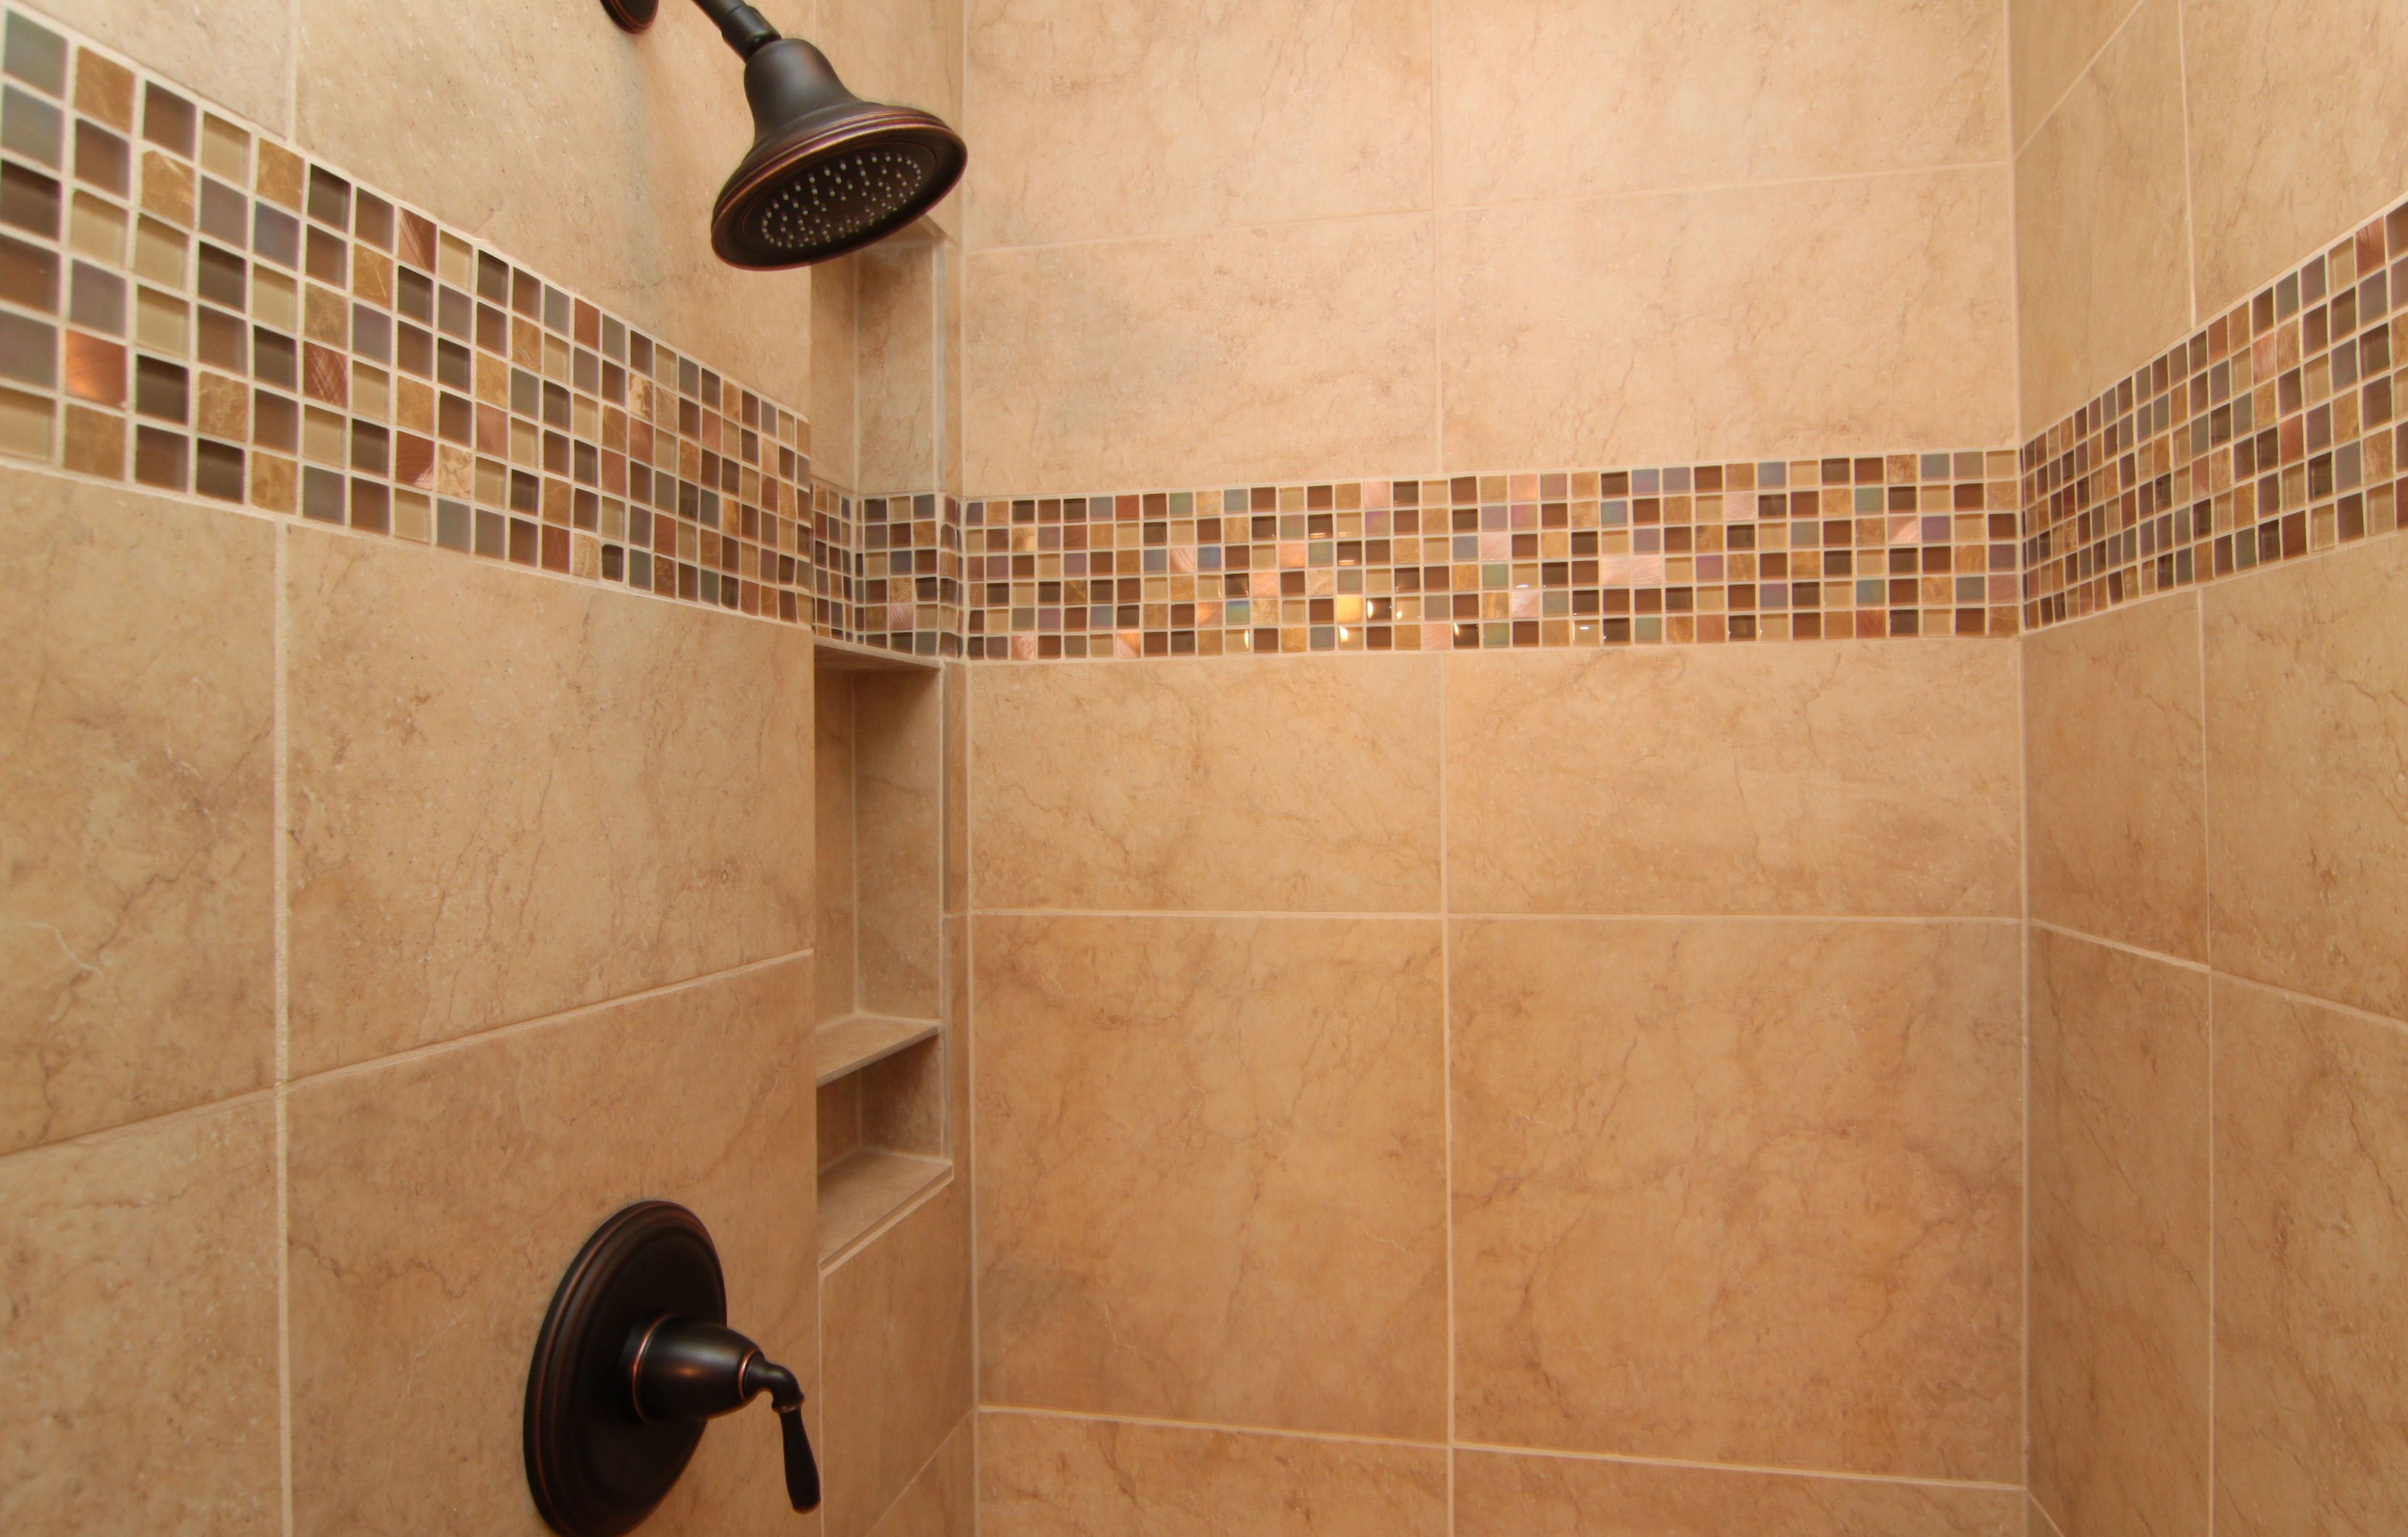 Here is a close up look at the master shower with a shampoo caddie